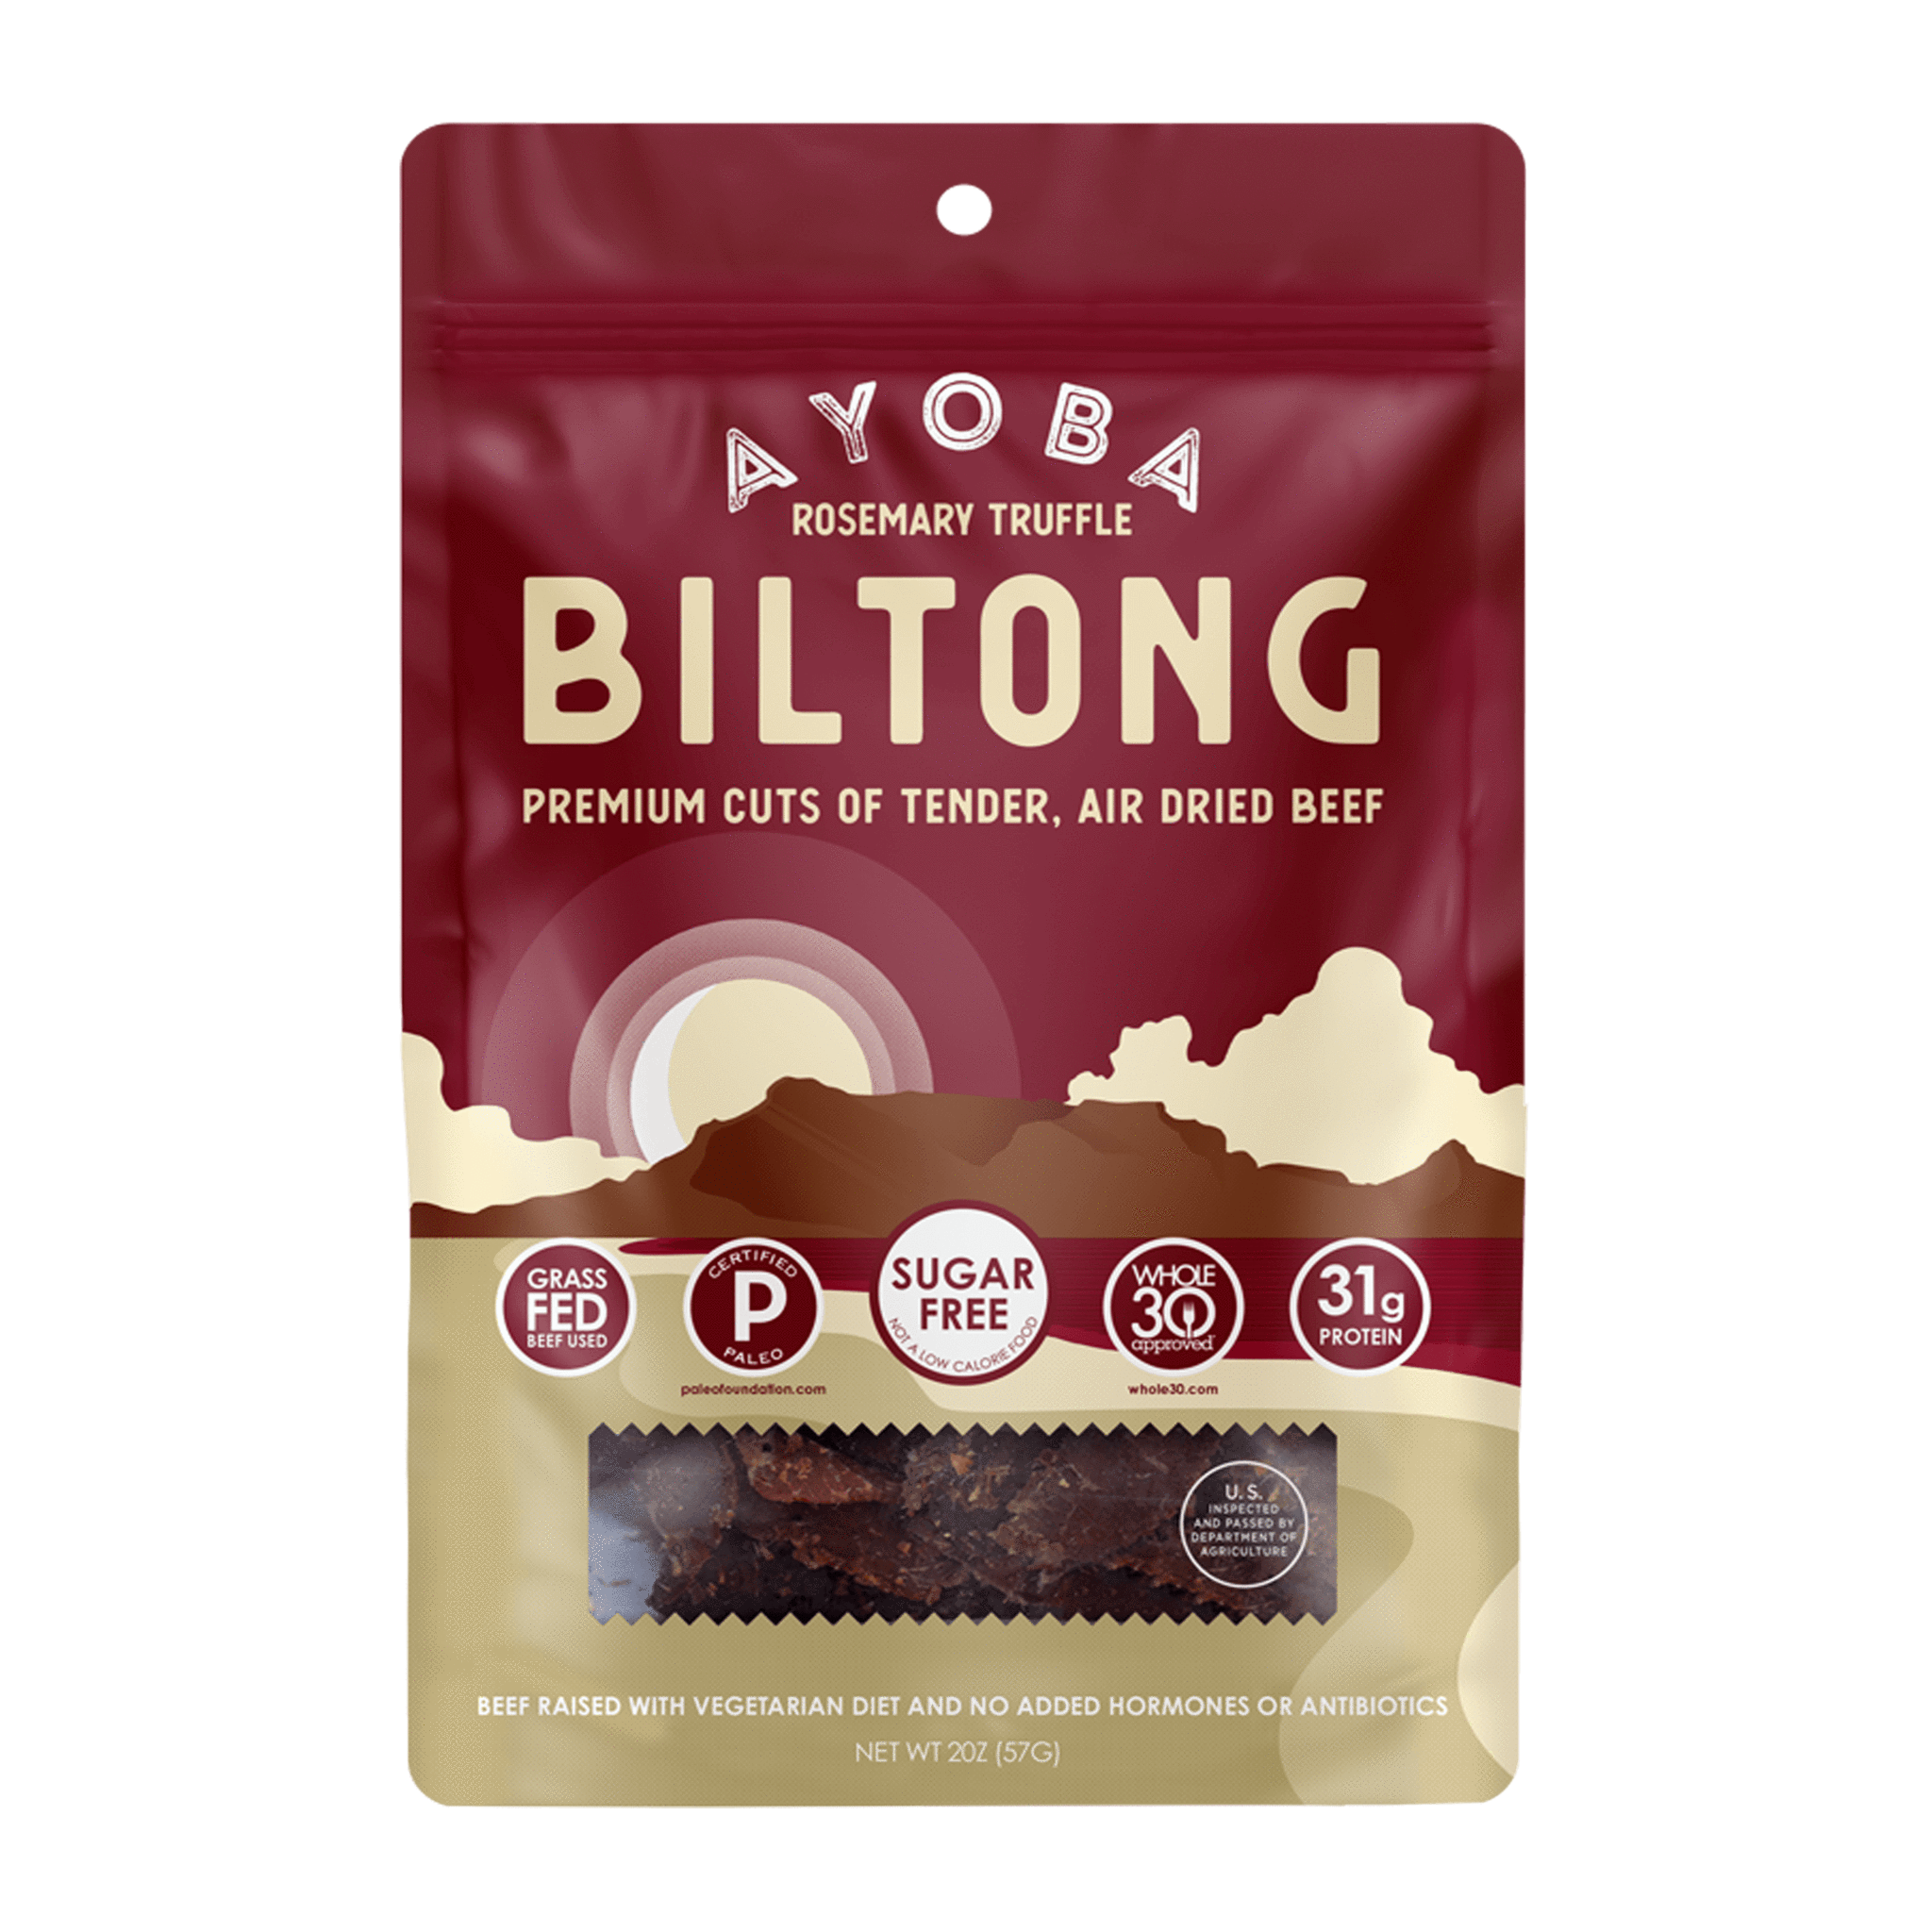 Ayoba Grass Fed Beef Biltong Rosemary Truffle - Ayoba - Certified Paleo, Keto Certified by the Paleo Foundation